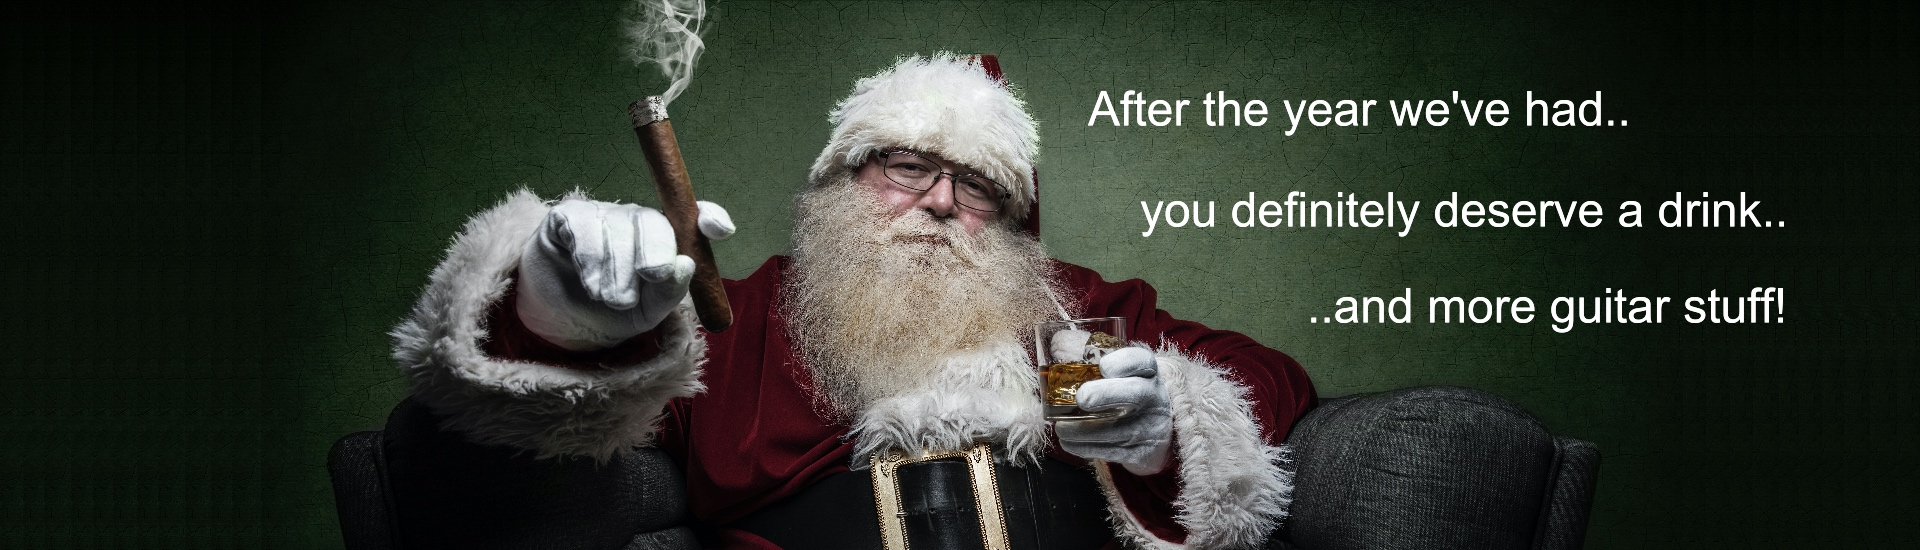 Santa wants you to have more guitar stuff!